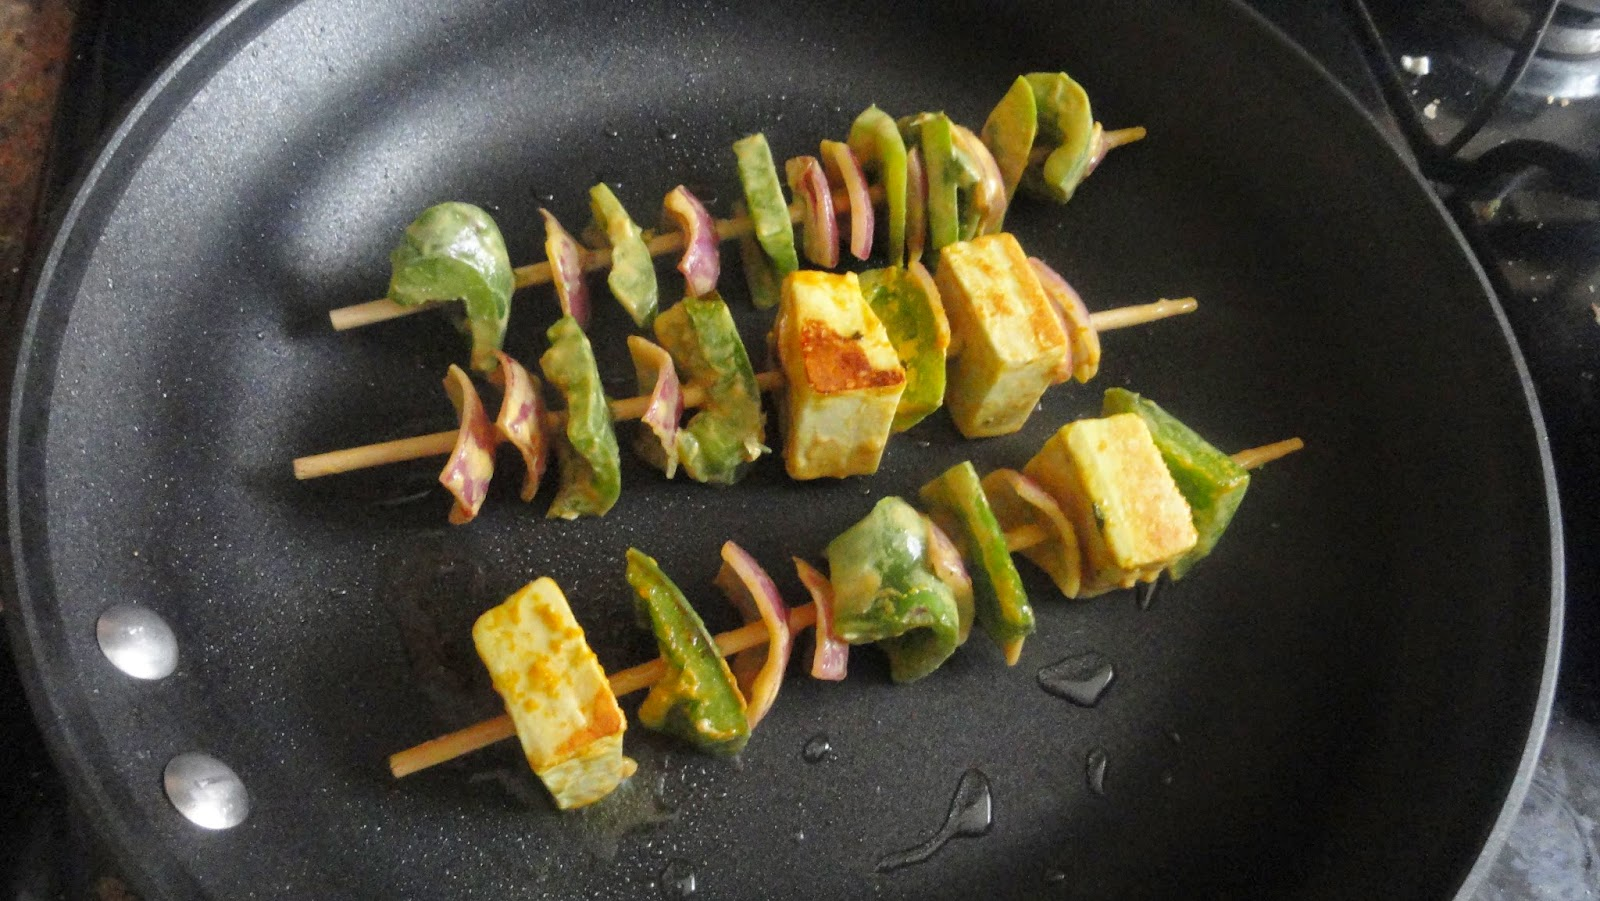 Place the skewers in pan with oil